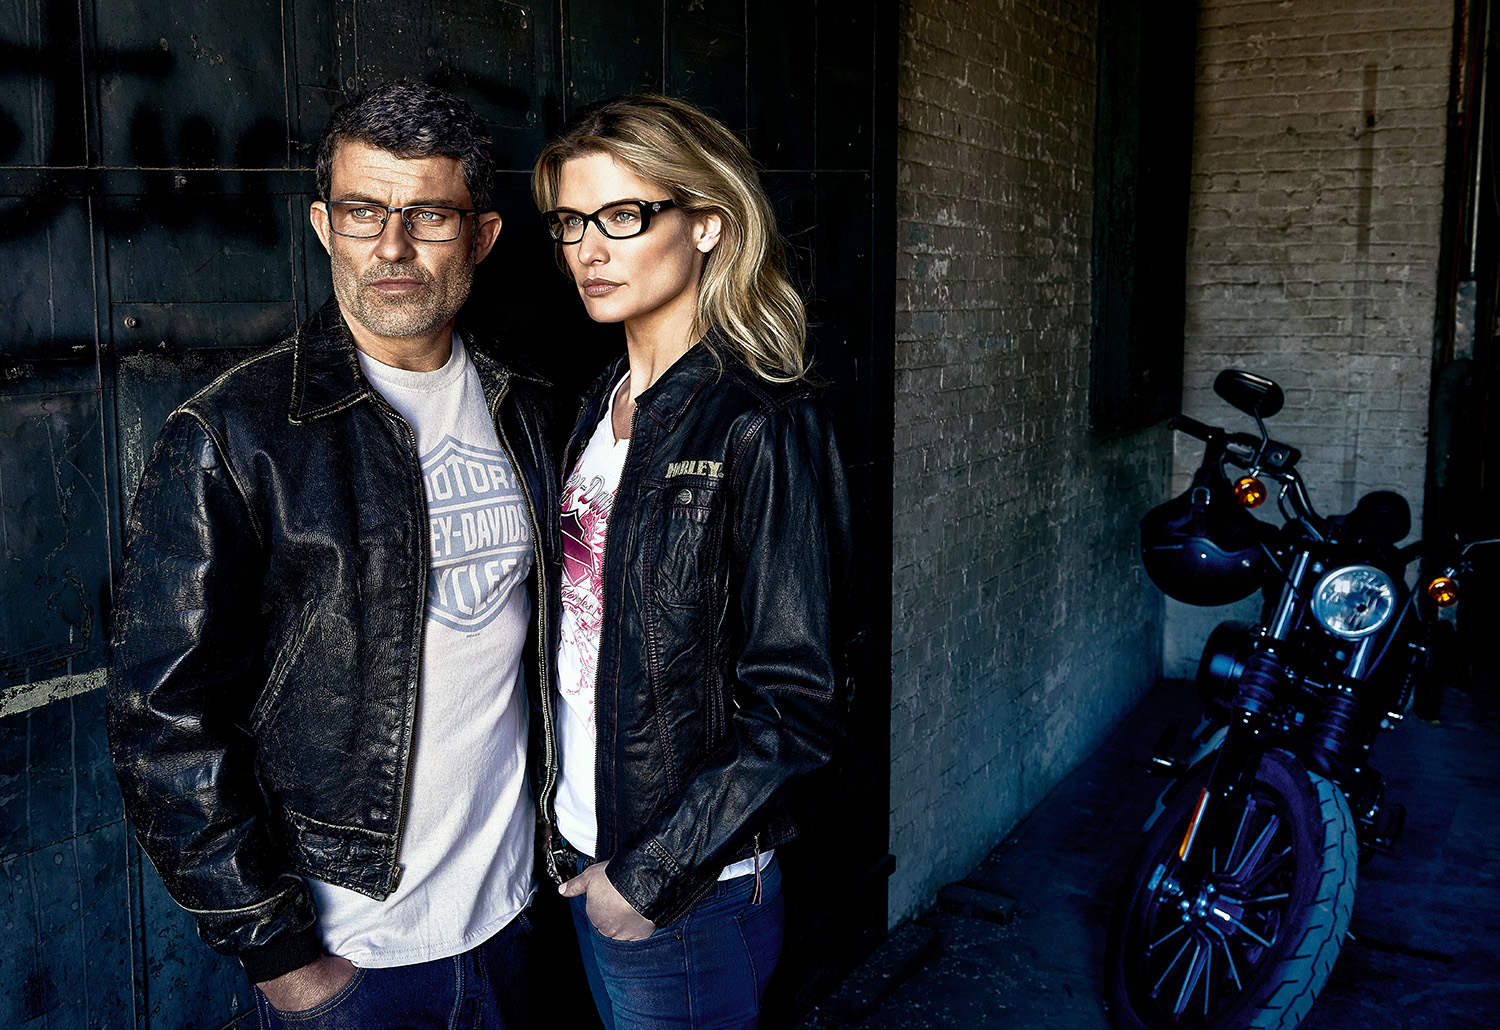 HD Couple motorcycle web.jpg